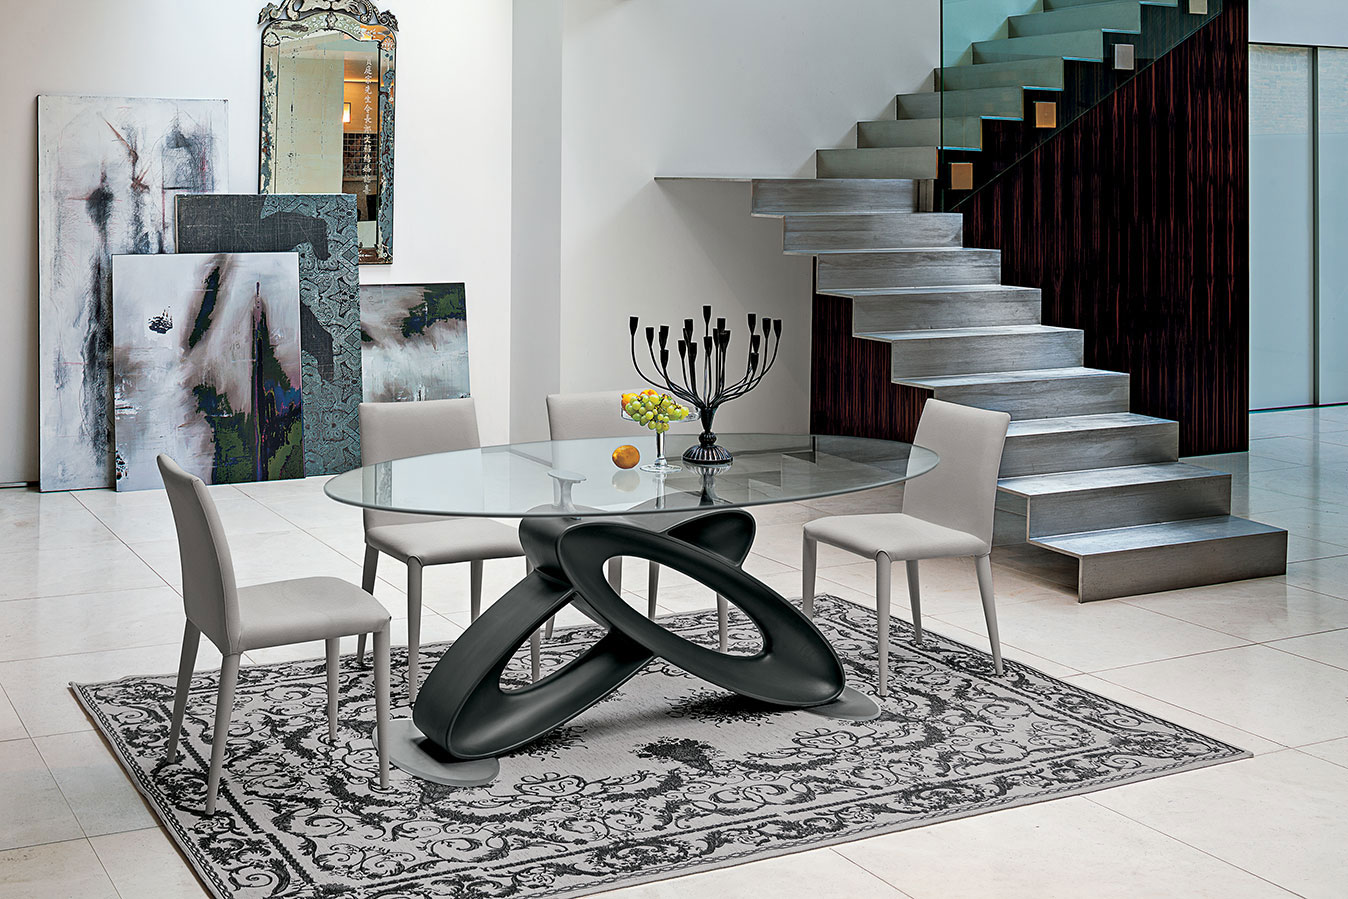 table, modern table,round table,glass table,  trapezi, chairs, karekles, dining table, kitchen table, andreotti, andreotti furniture, epipla, furniture, limassol, cyprus